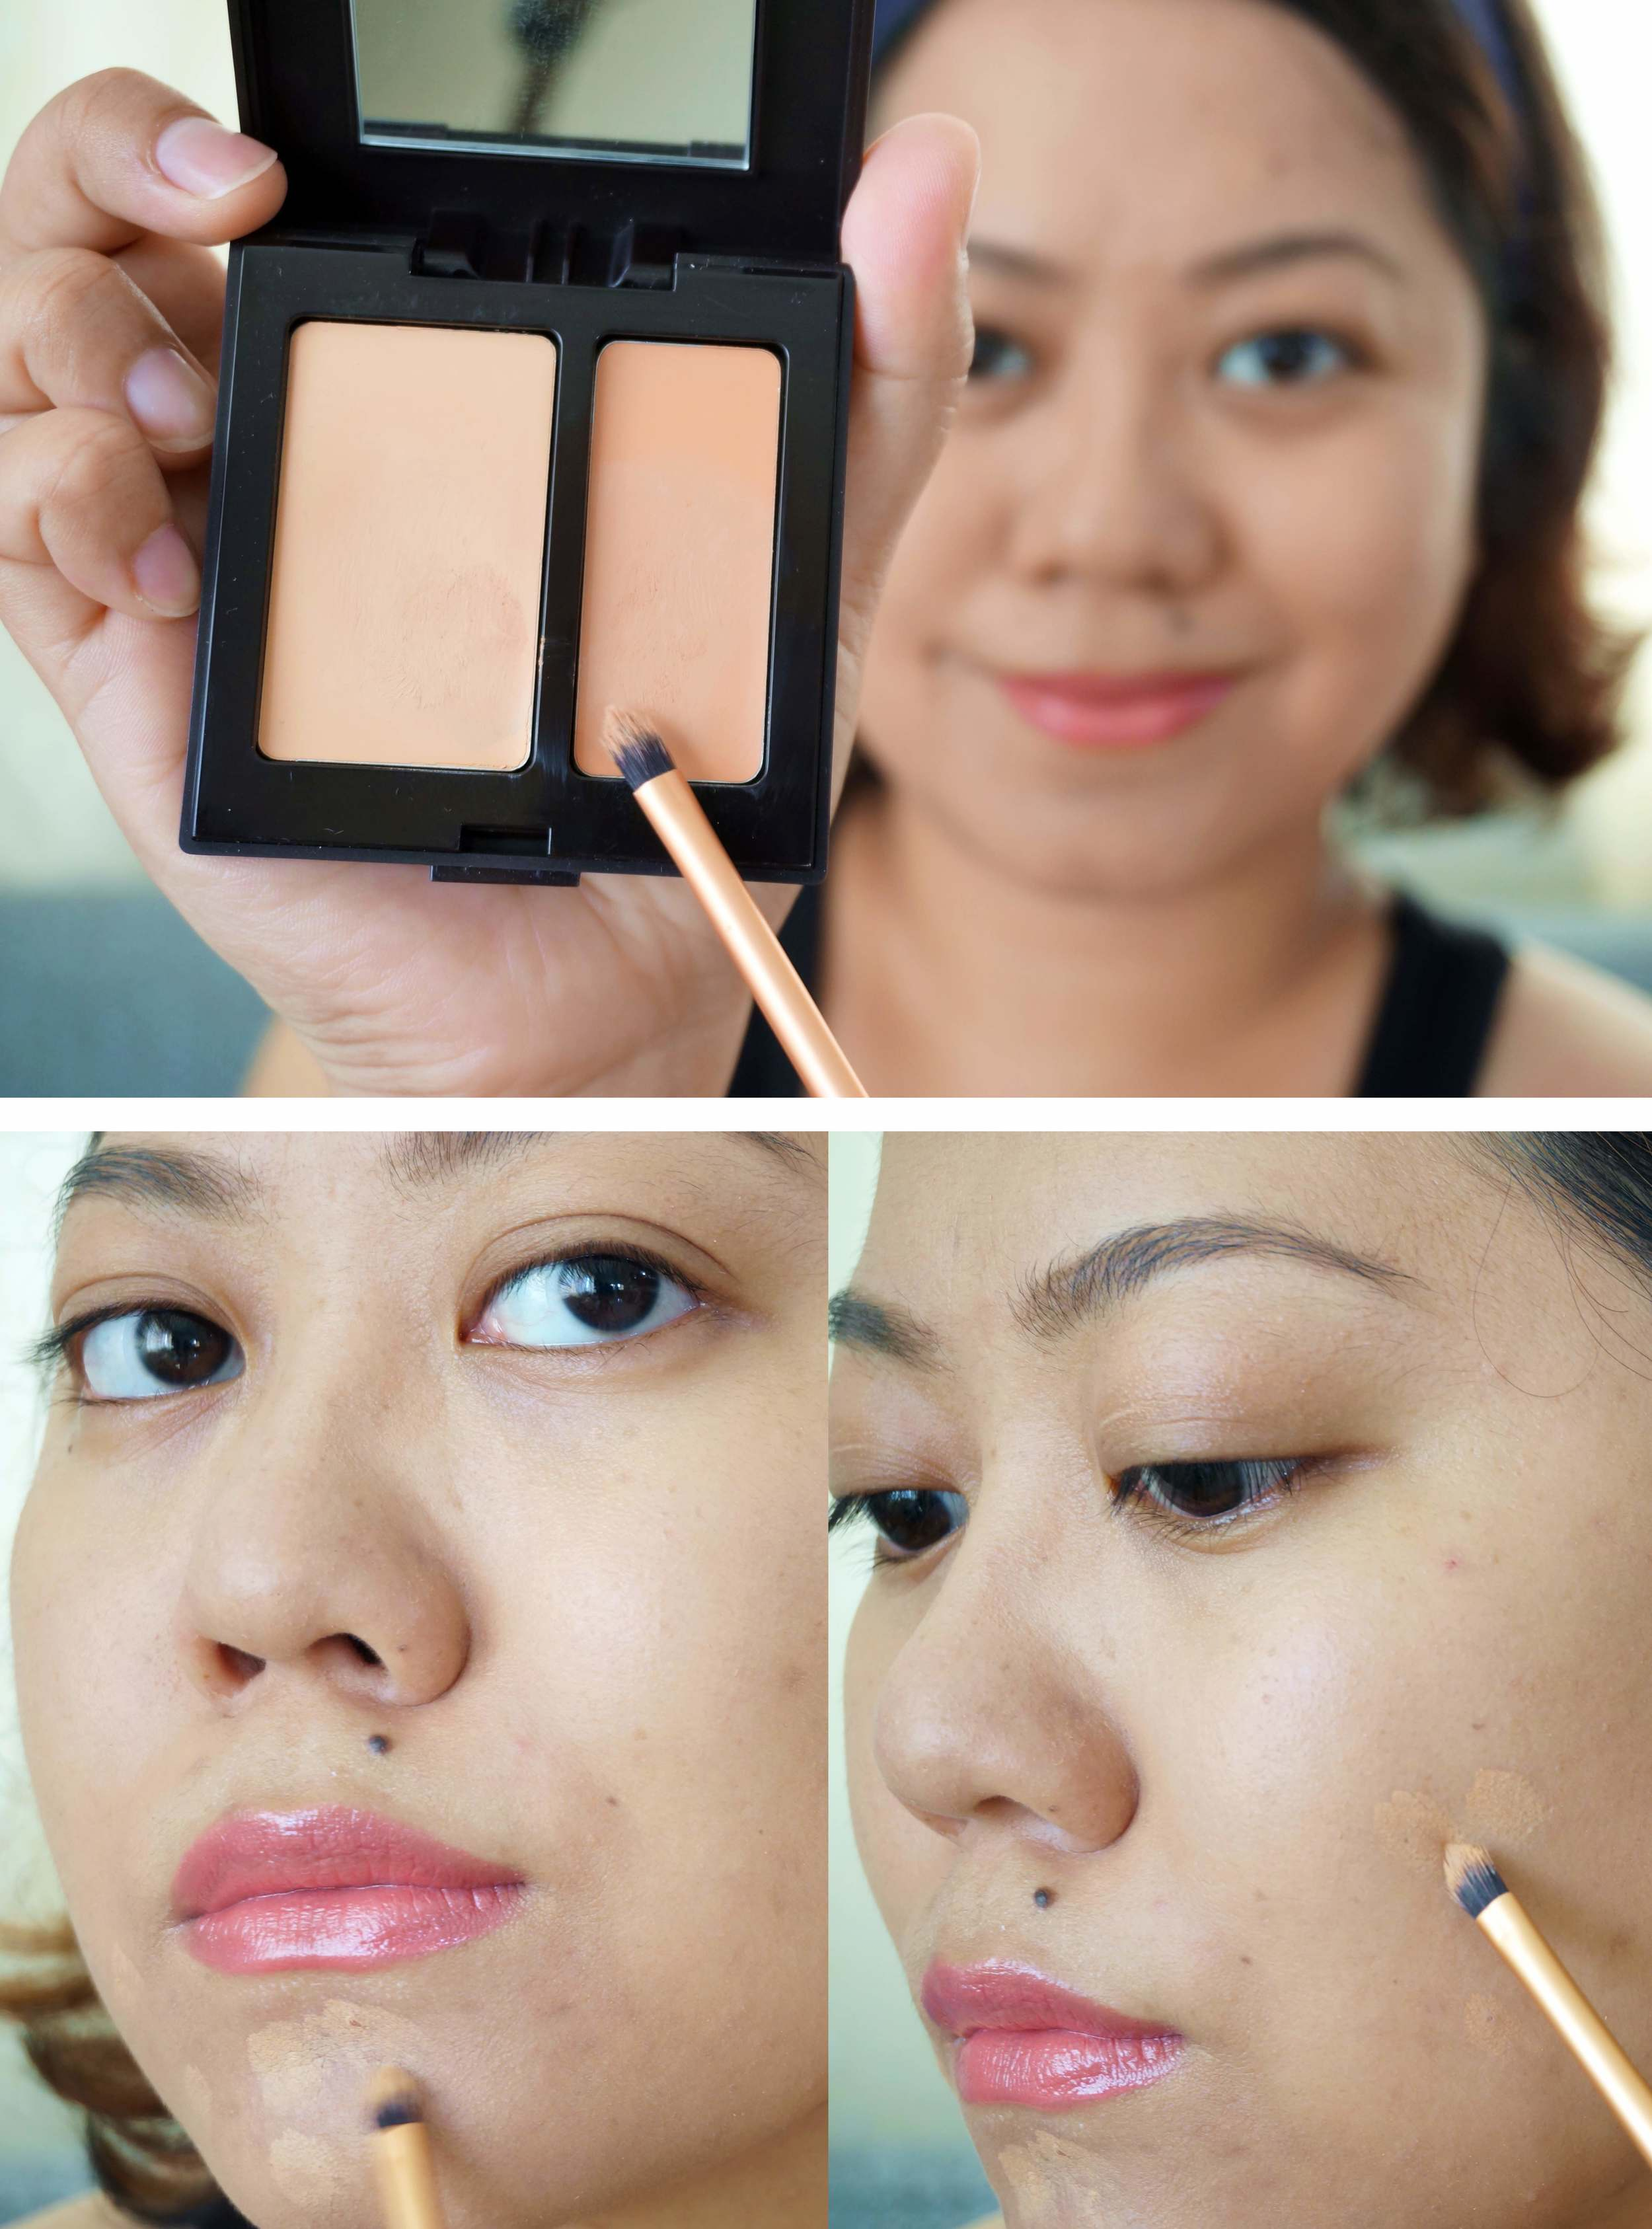 The concealer + brush in action. I mixed a bit too light on my chin, but the concealer on my cheeks is almost imperceptible.